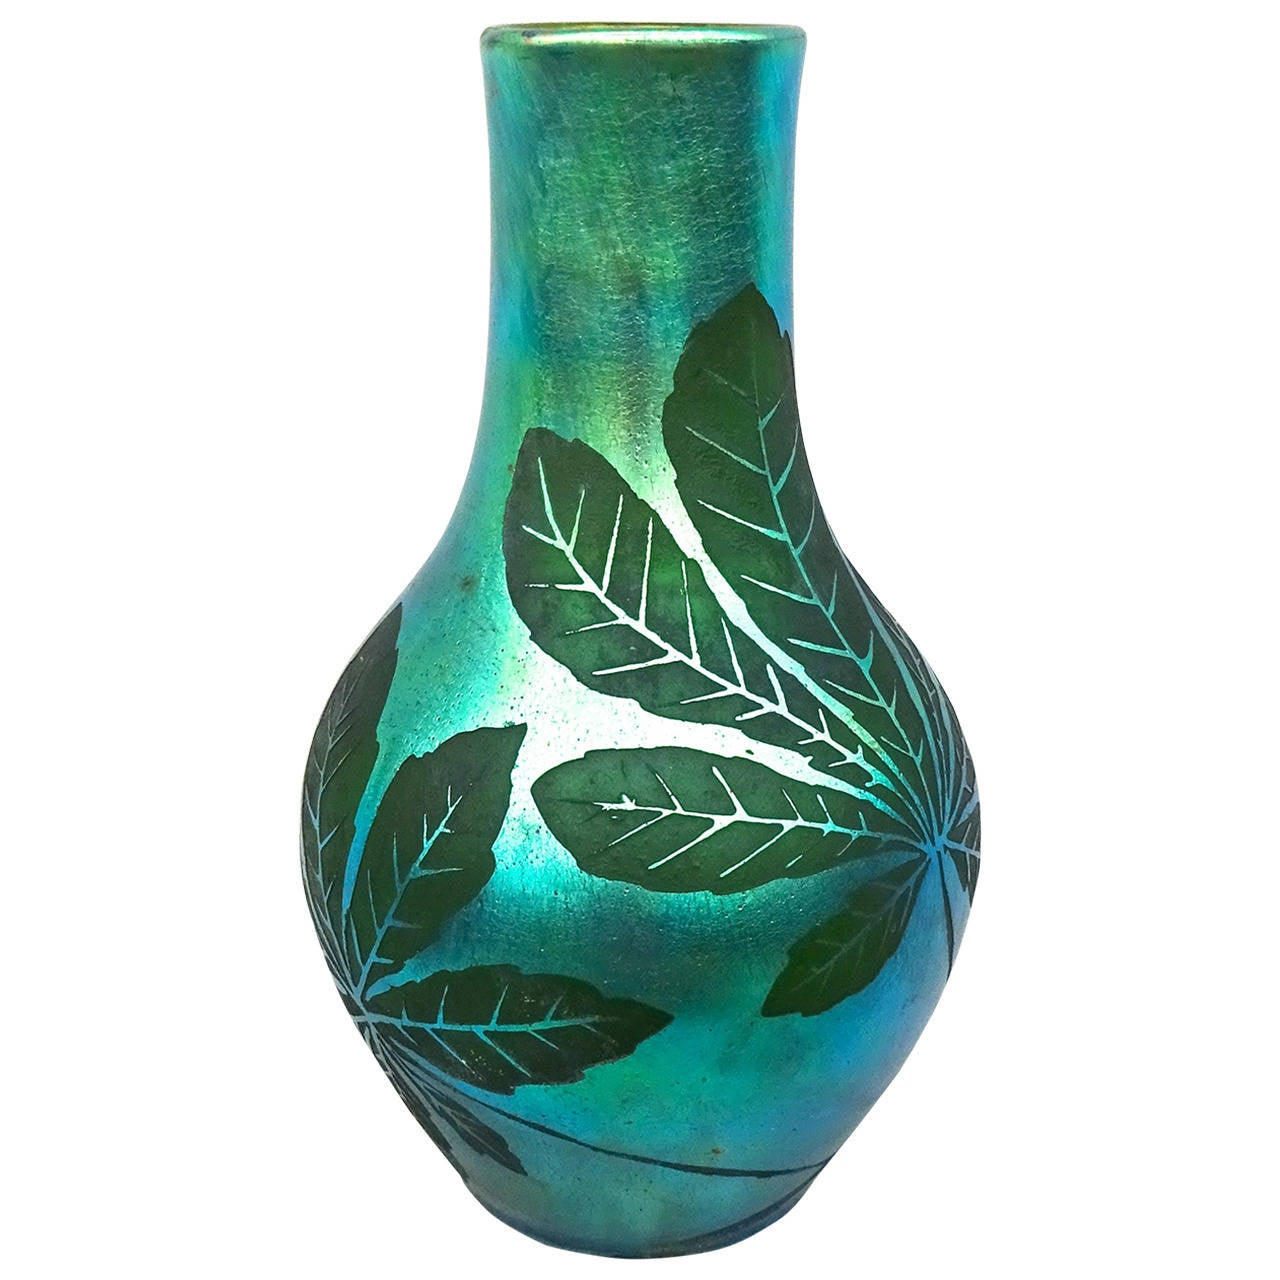 French Deco Iridescent Acid-Etched Art Glass Vase, 1920s For Sale